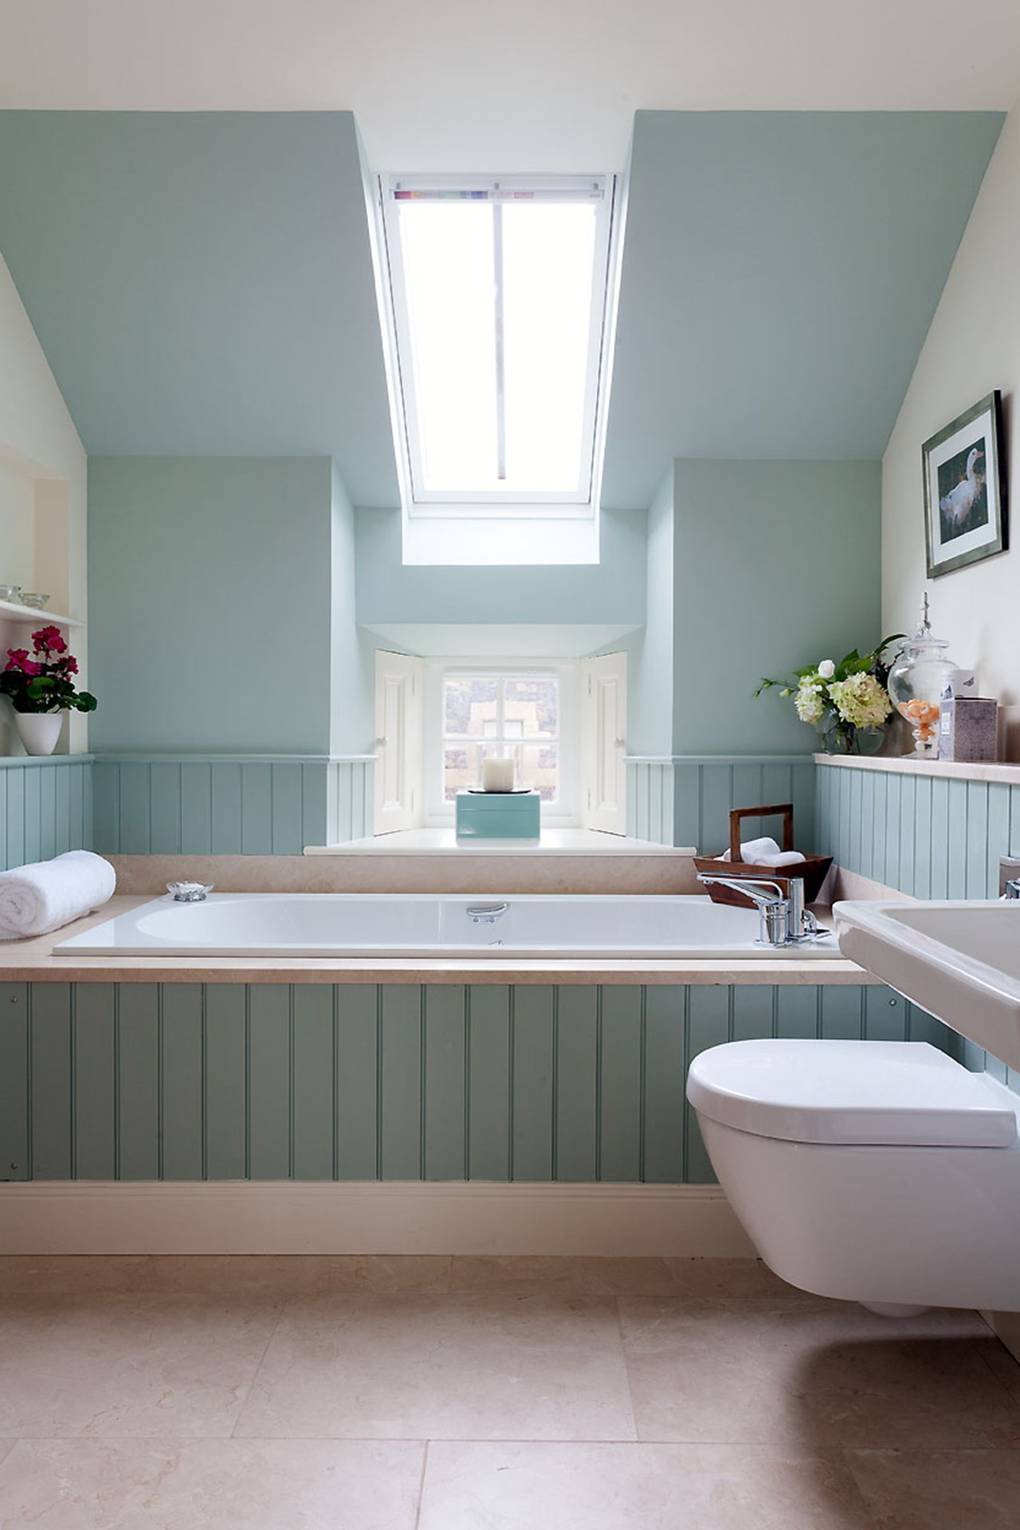 Bathroom Designs - Interior decoration ideas | House & Garden